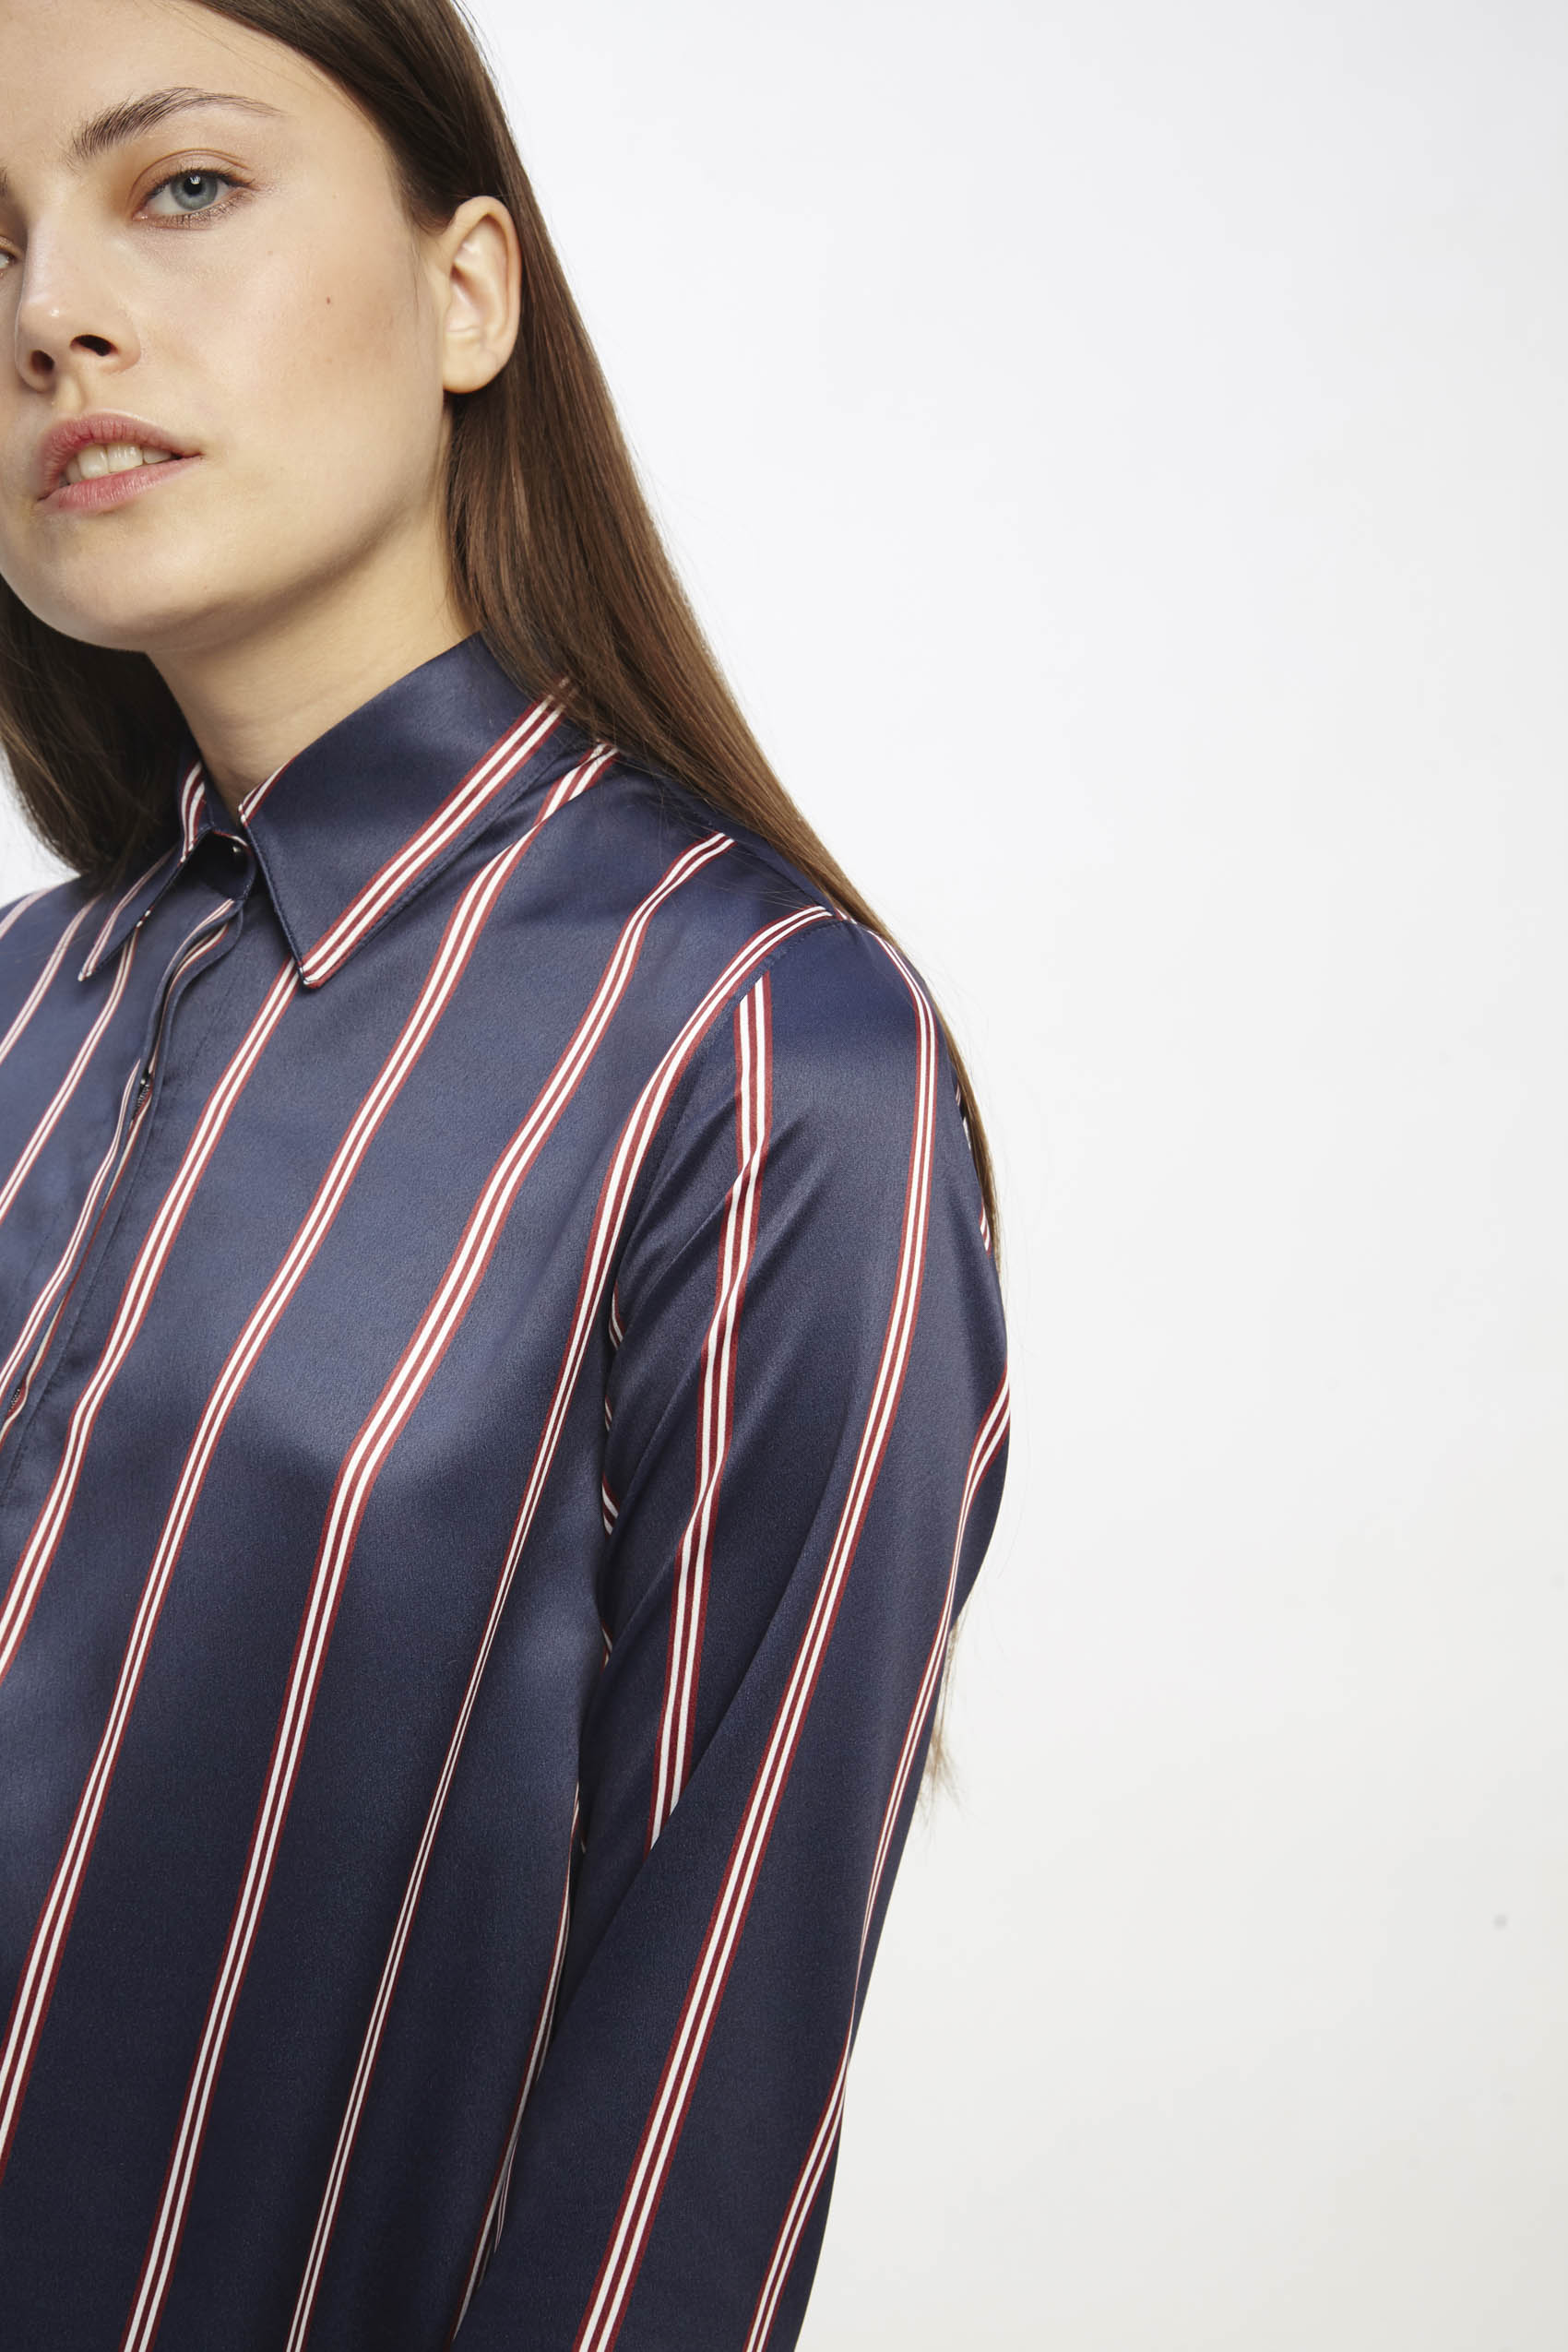 awada_camisa-erin_06-23-2019__picture-1874